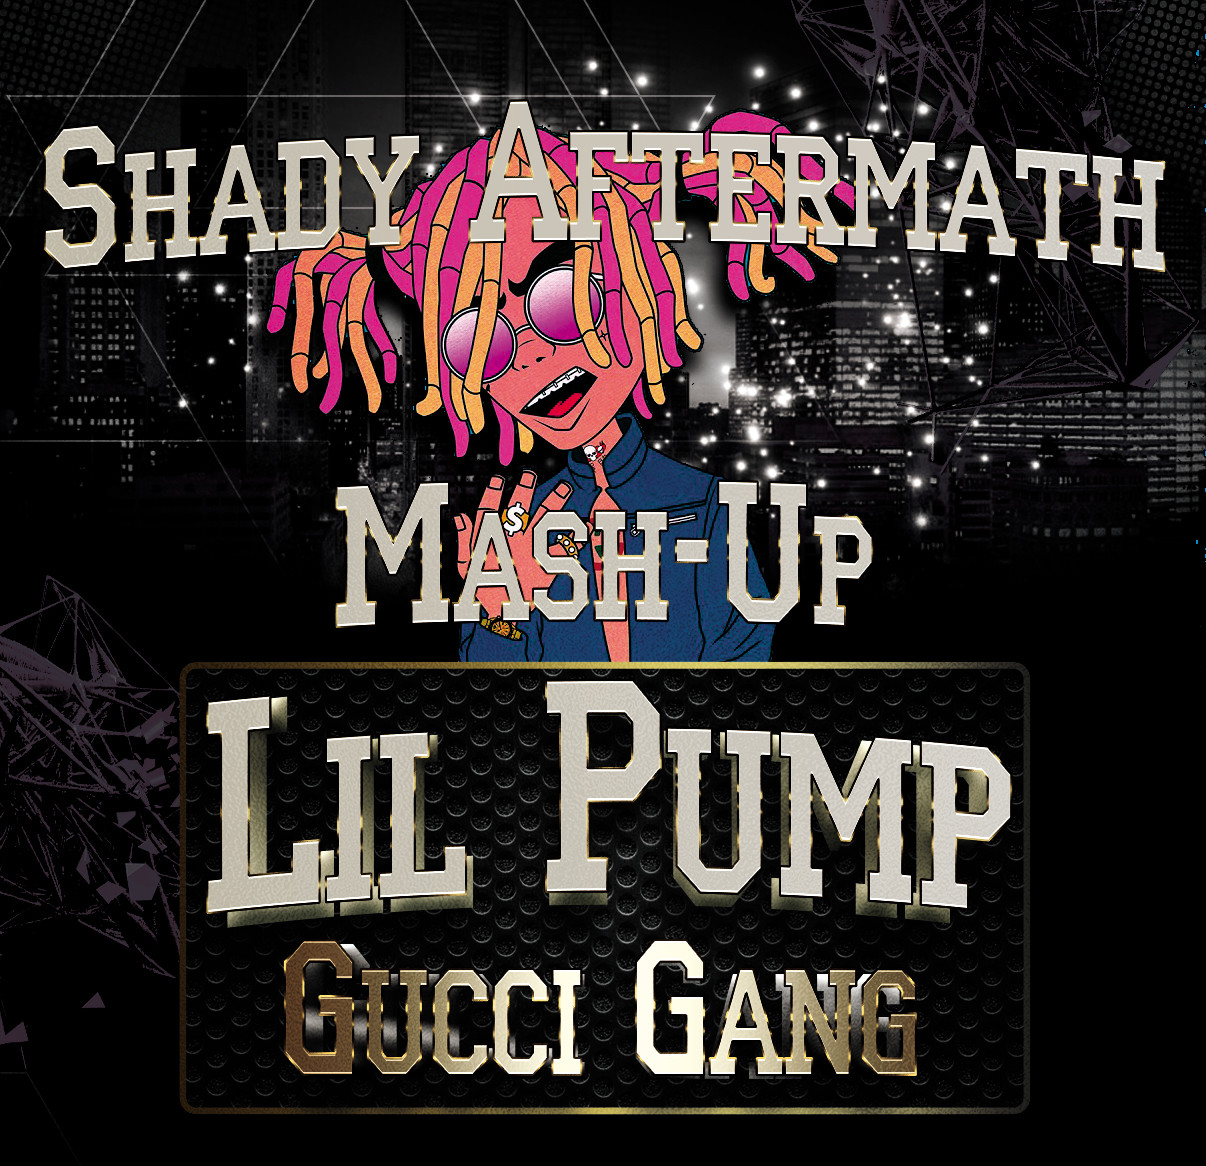 Lil Pump - Gucci Gang (Shady Aftermath Mash-Up) – Shady